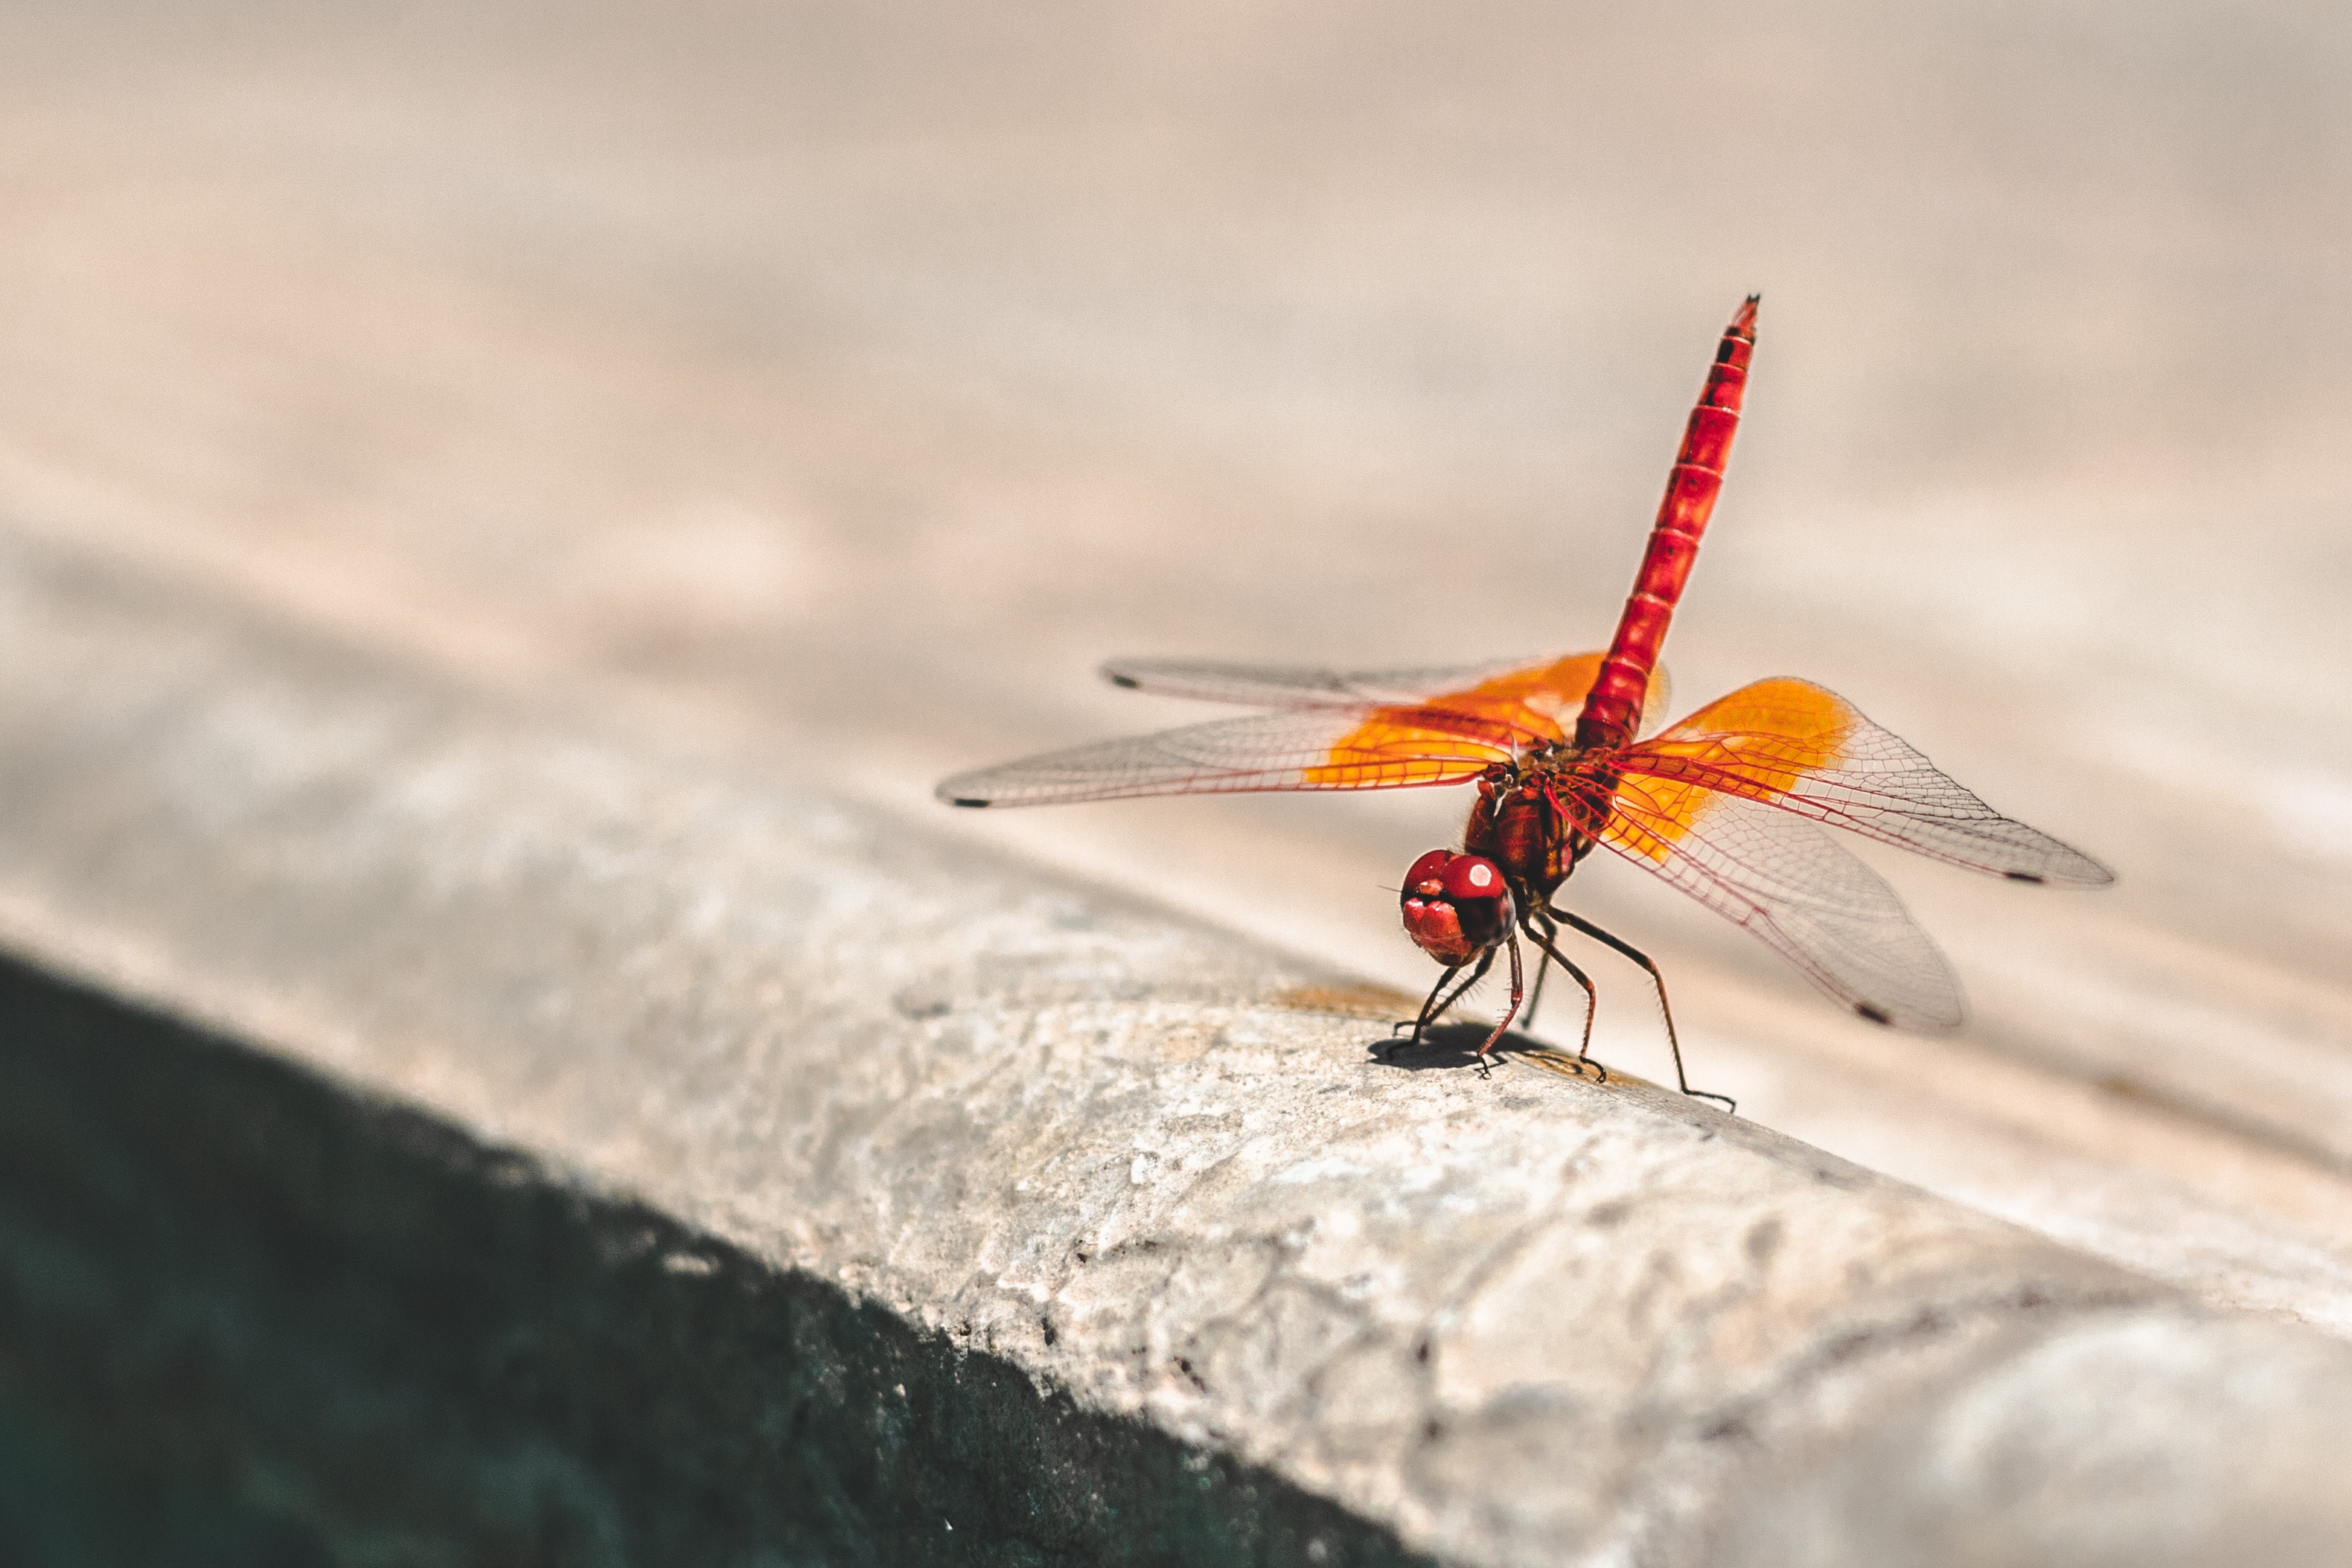 Orange dragonfly lands on the concrete pavement